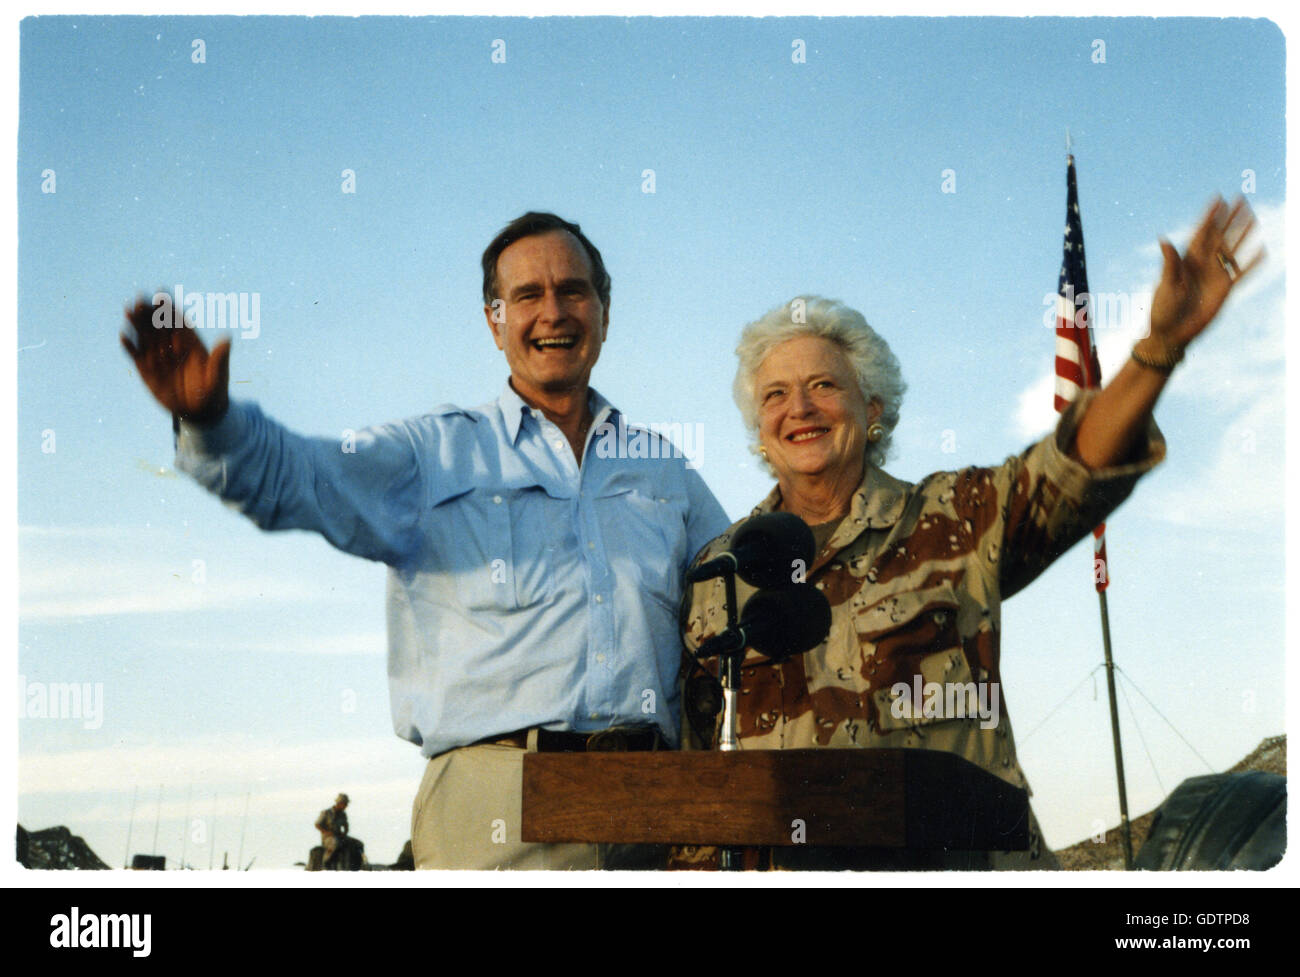 President George Bush and First Lady Barbara Bush wave as they stand in the back of a vehicle during a visit to Stock Photo